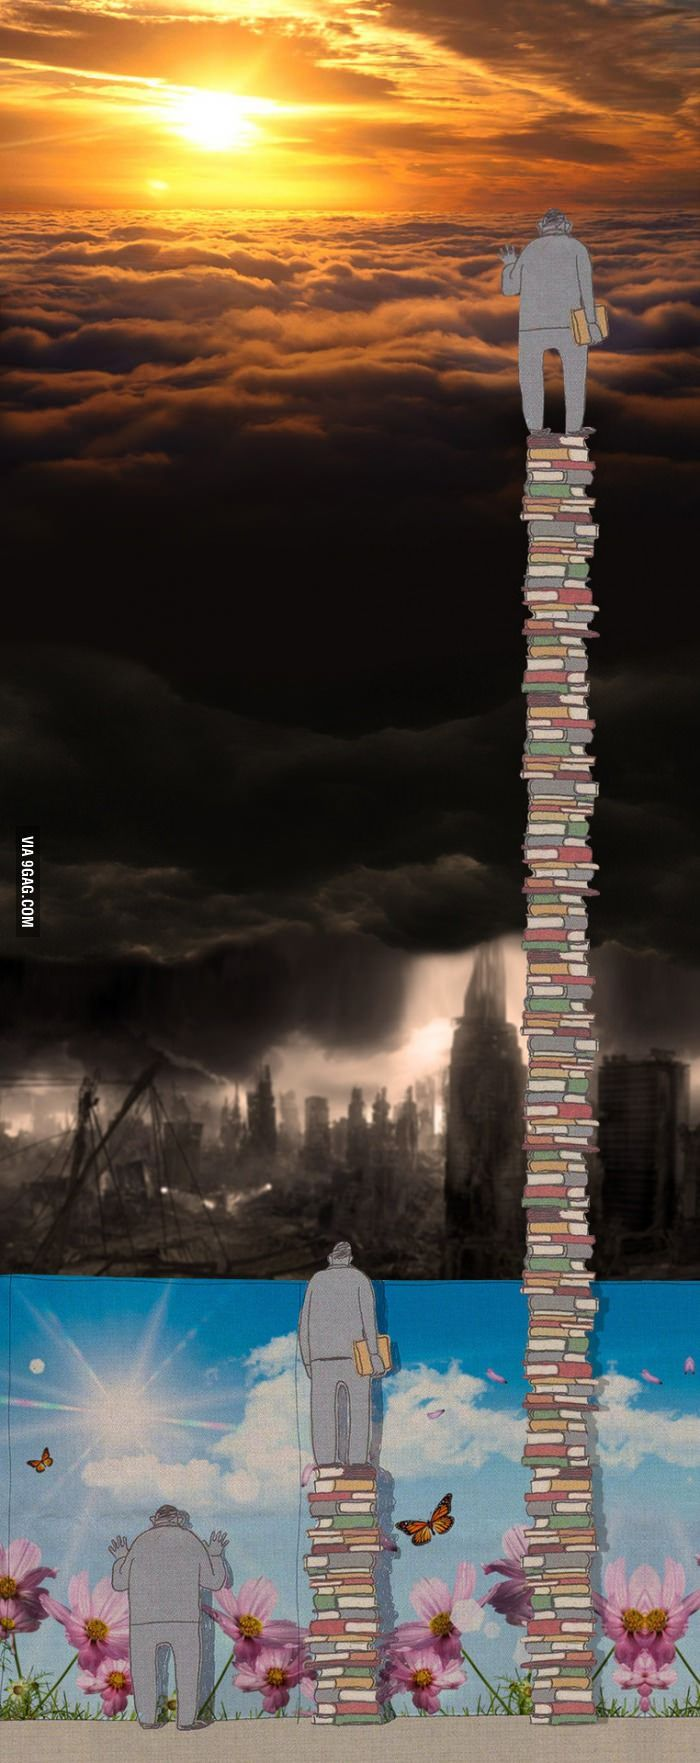 We get a little taller by reading.